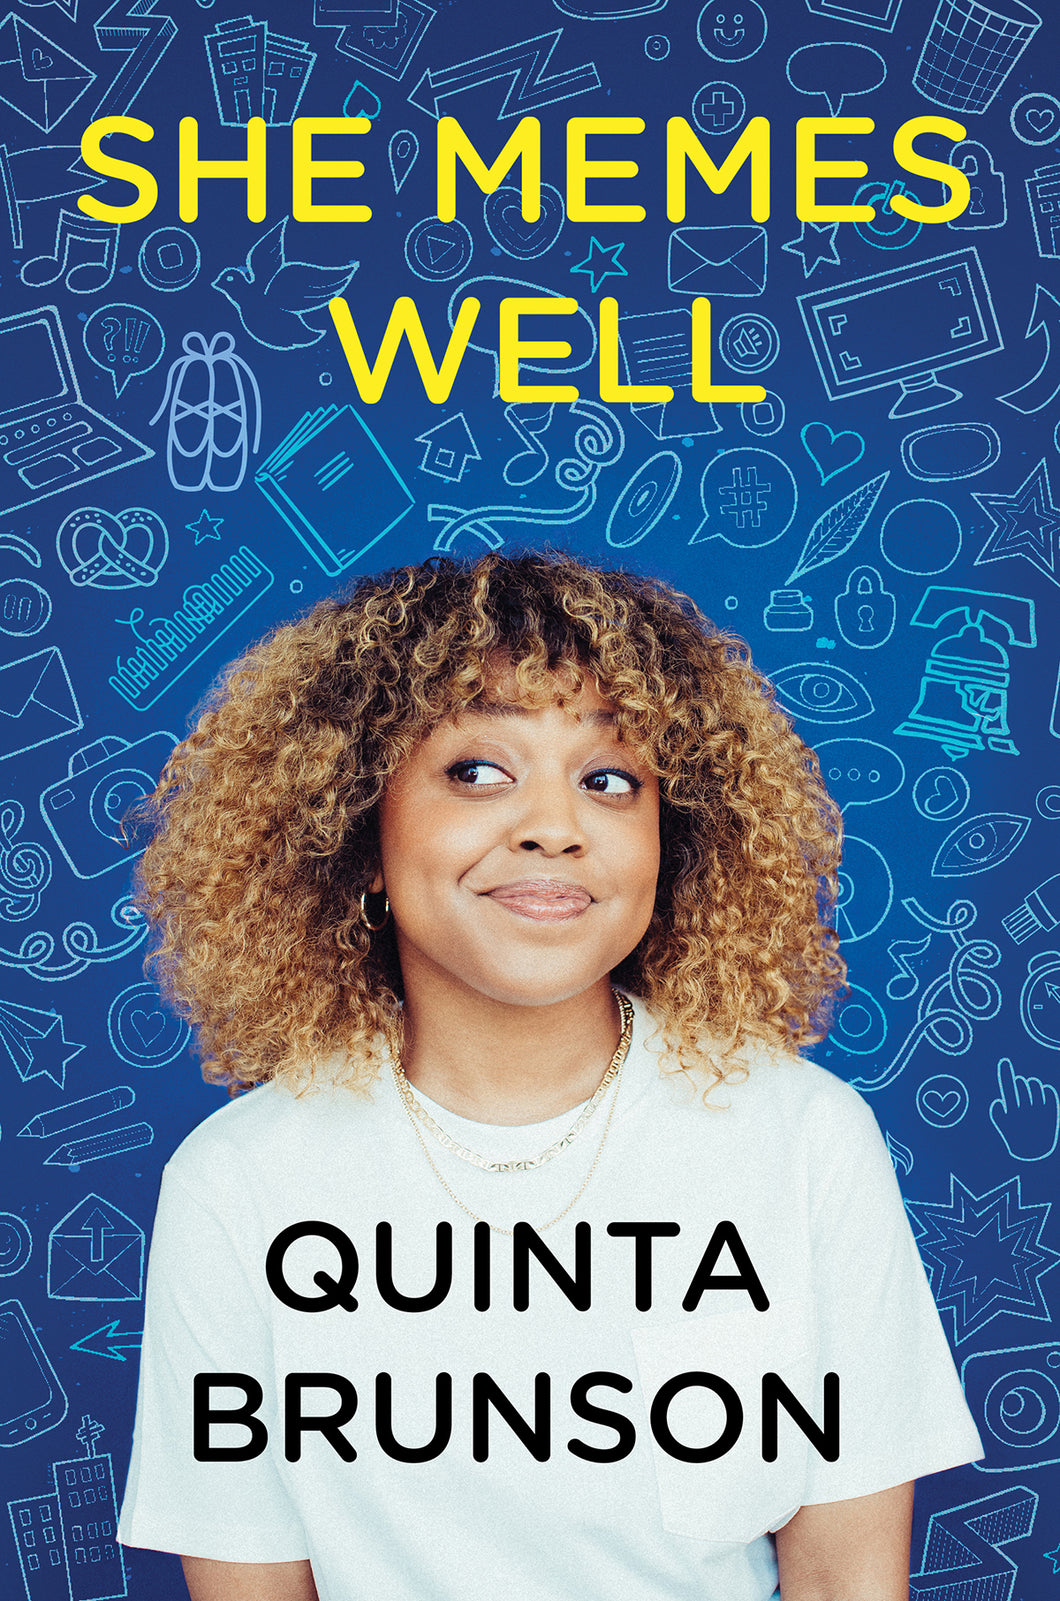 She Memes Well: Essays by Quinta Brunson (Pre-Order, June 15)